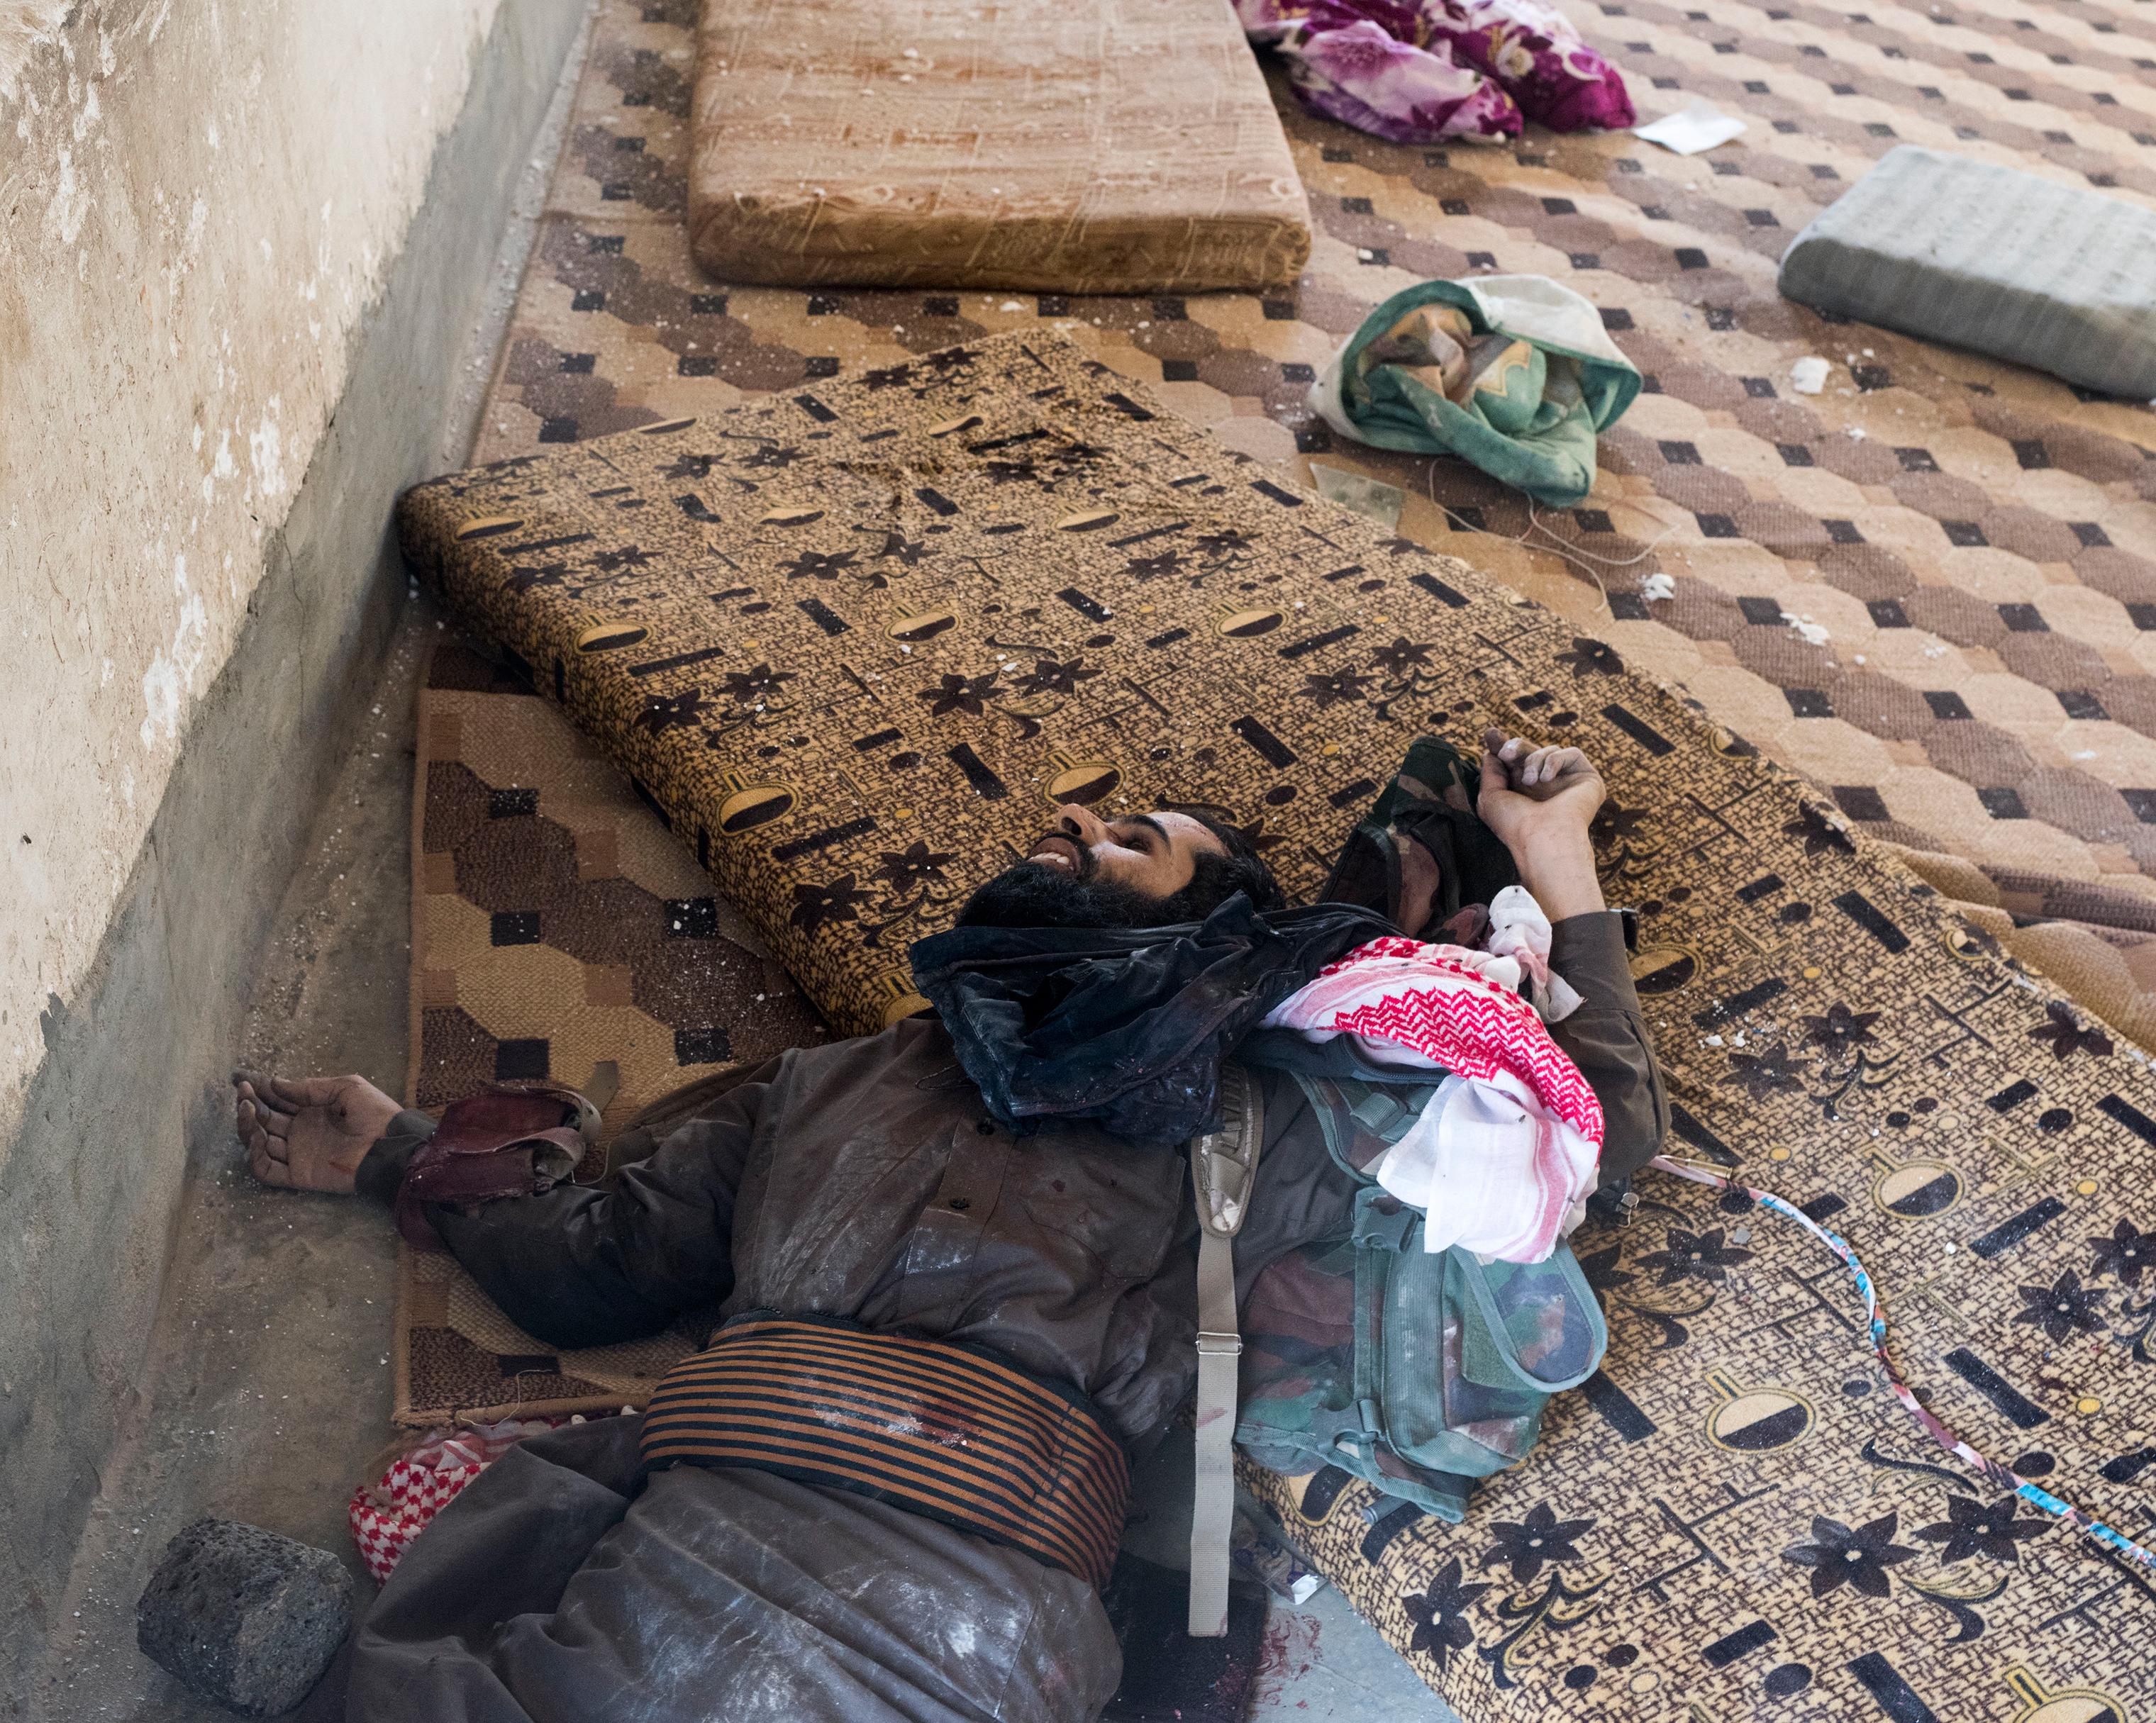 The body of an ISIS fighter killed during fighting with a Kurdish militia on the outskirts of Deir ez-Zor in October. He is still wearing a suicide belt.